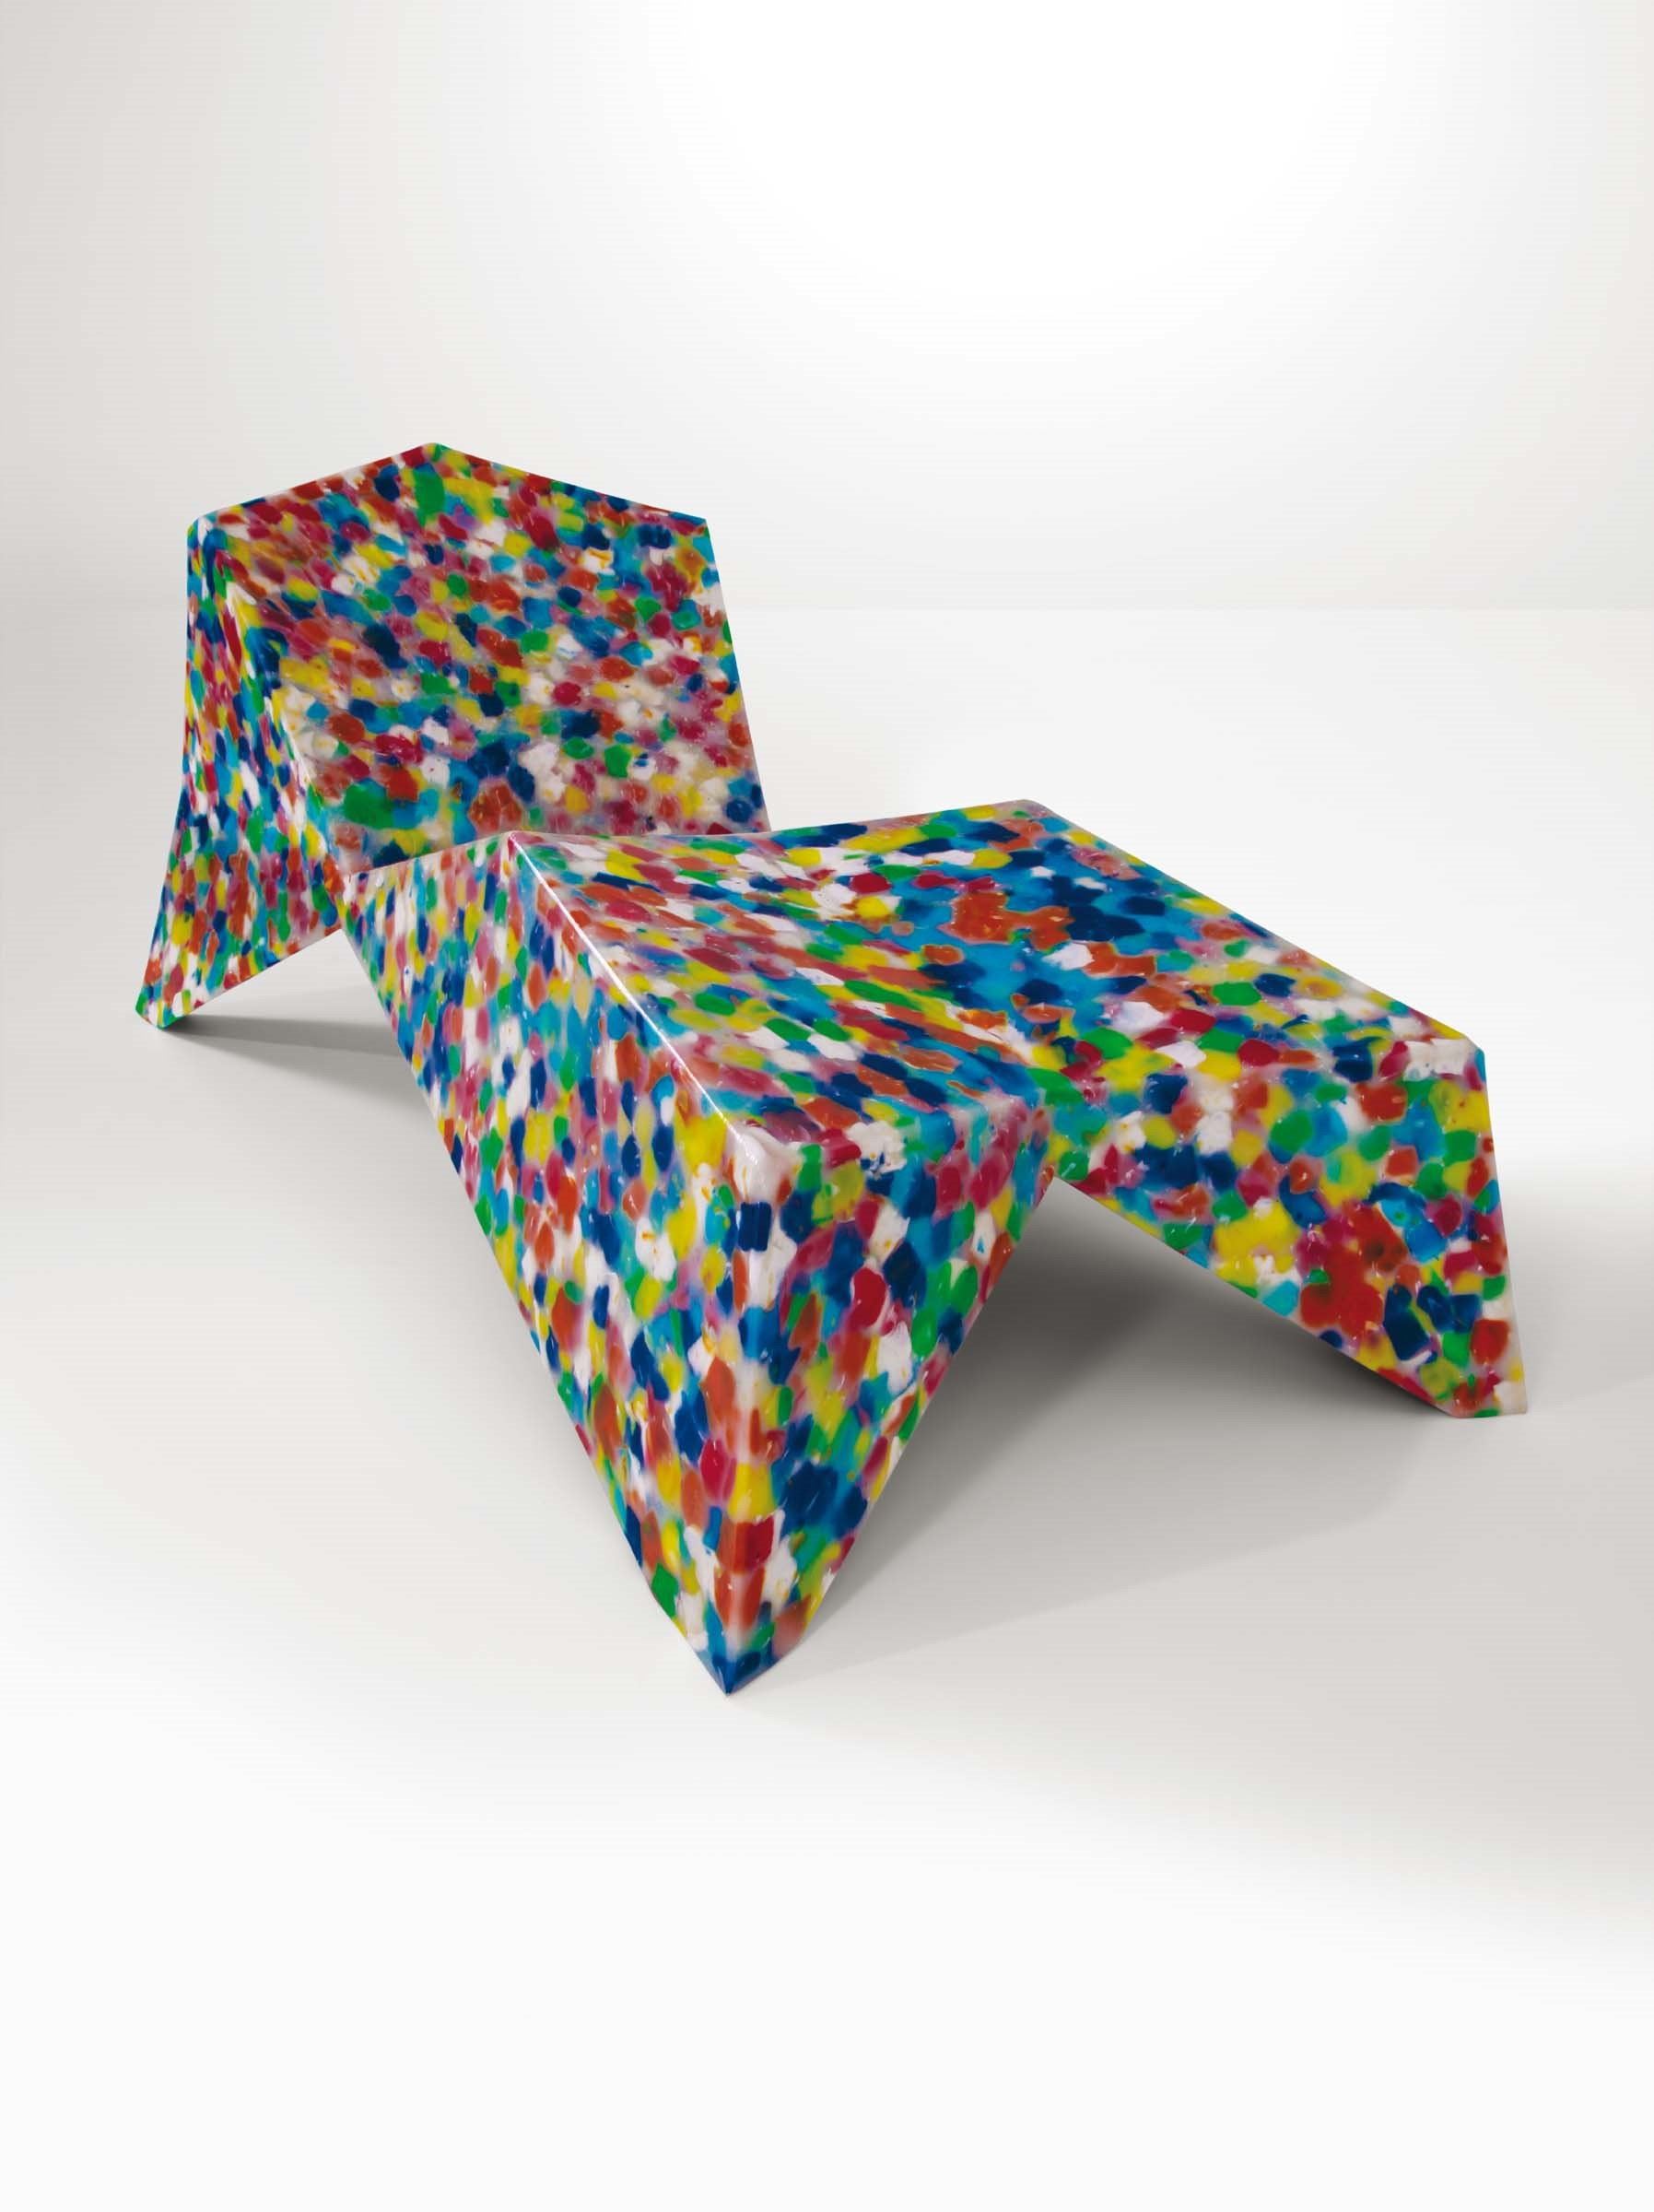 Alessandro Mendini Tribute to a Legend of Contemporary Design - Chaise Longue Alex alessandro mendini Alessandro Mendini: Tribute to a Legend of Contemporary Design Alessandro Mendini Tribute to a Legend of Contemporary Design Chaise Longue Alex